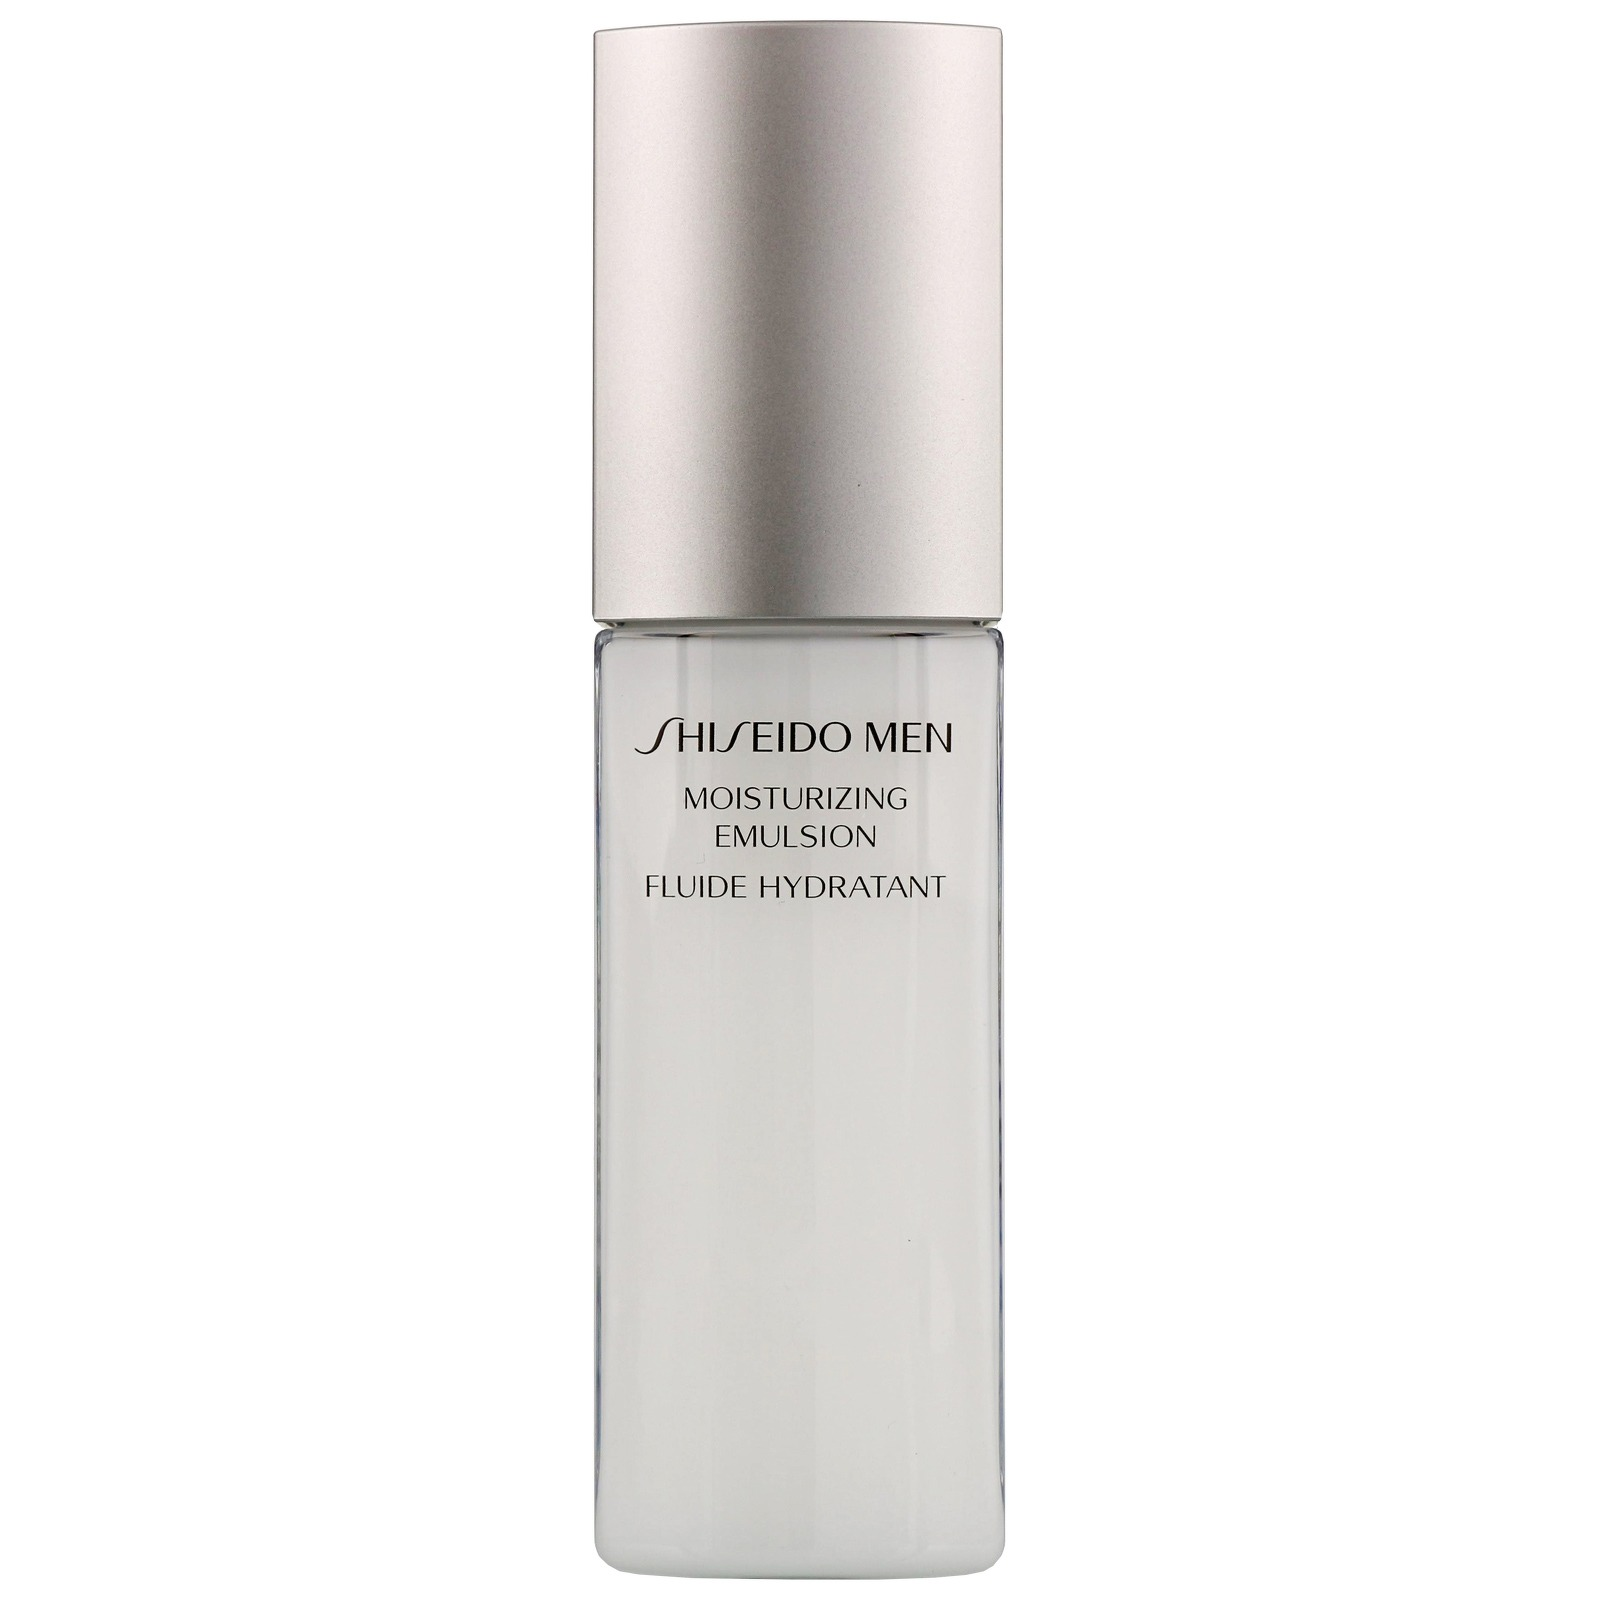 Shiseido Men Moisturizing Emulsion 100ml / 3.3 fl.oz.